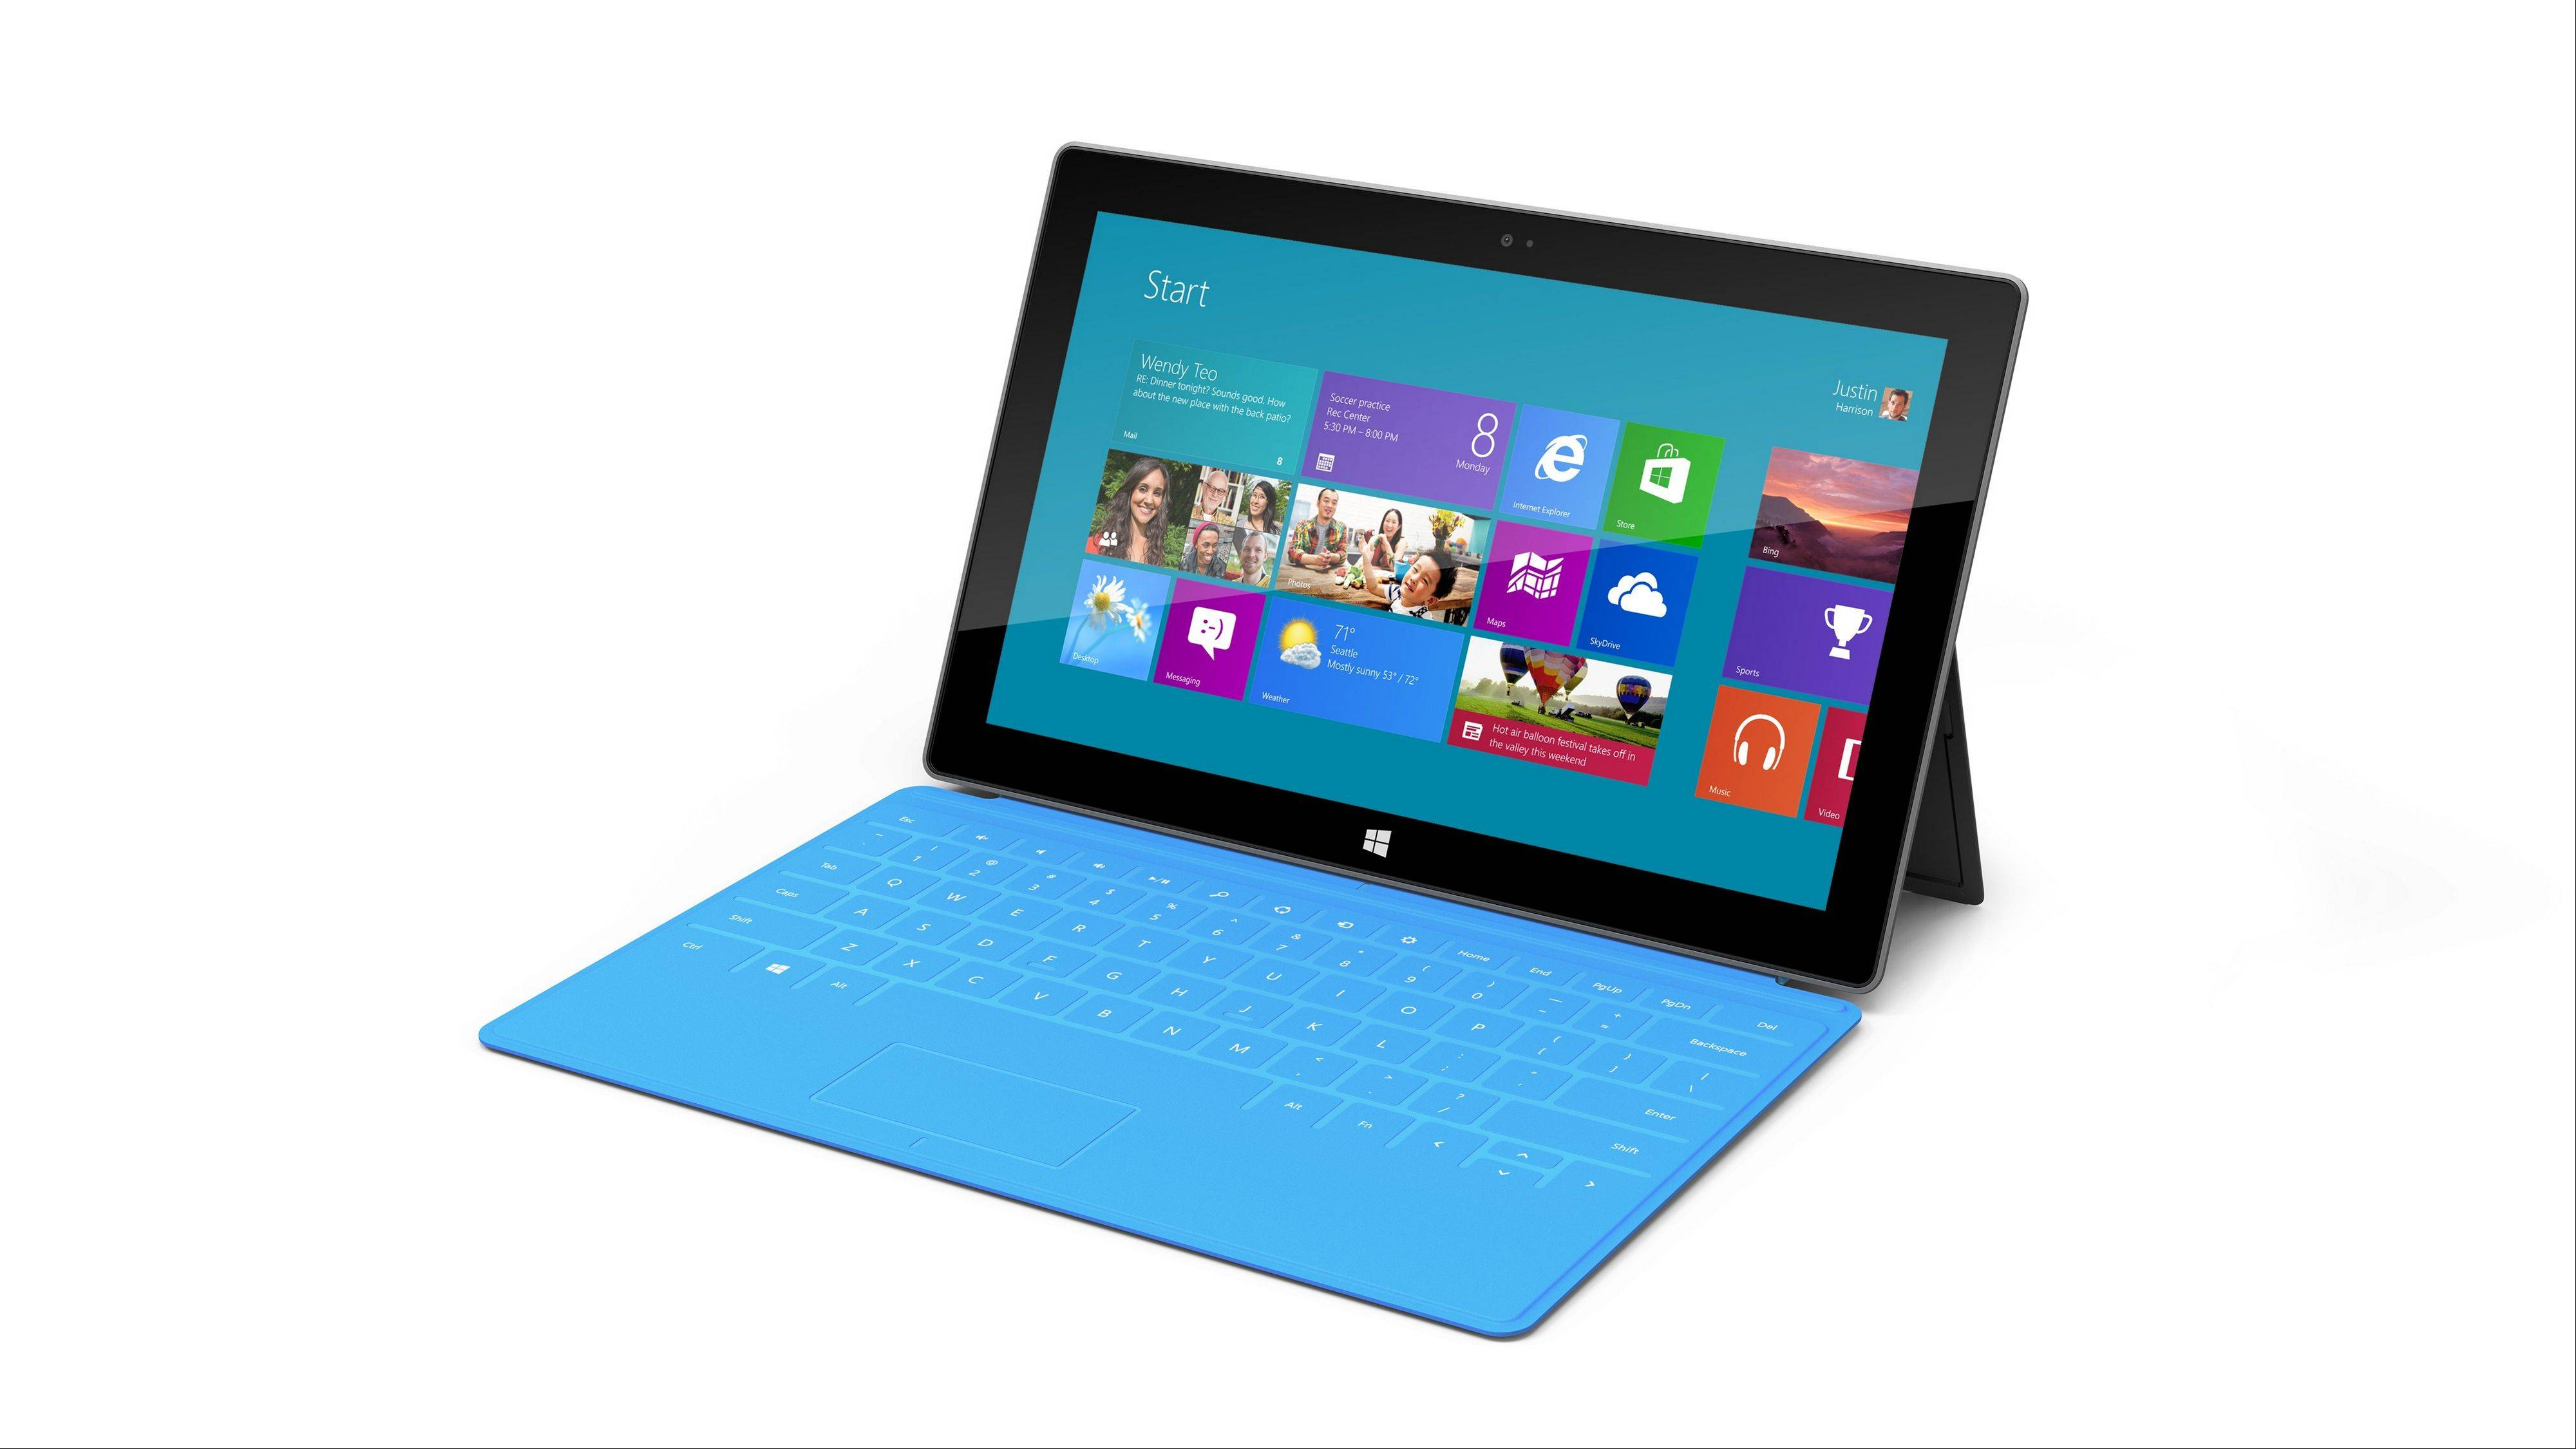 Microsoft Corp., the world's largest software maker, said its Surface tablet computer running the new Windows 8 Pro software will be available Feb. 9, the first versions of the machine powered by Intel Corp. chips.